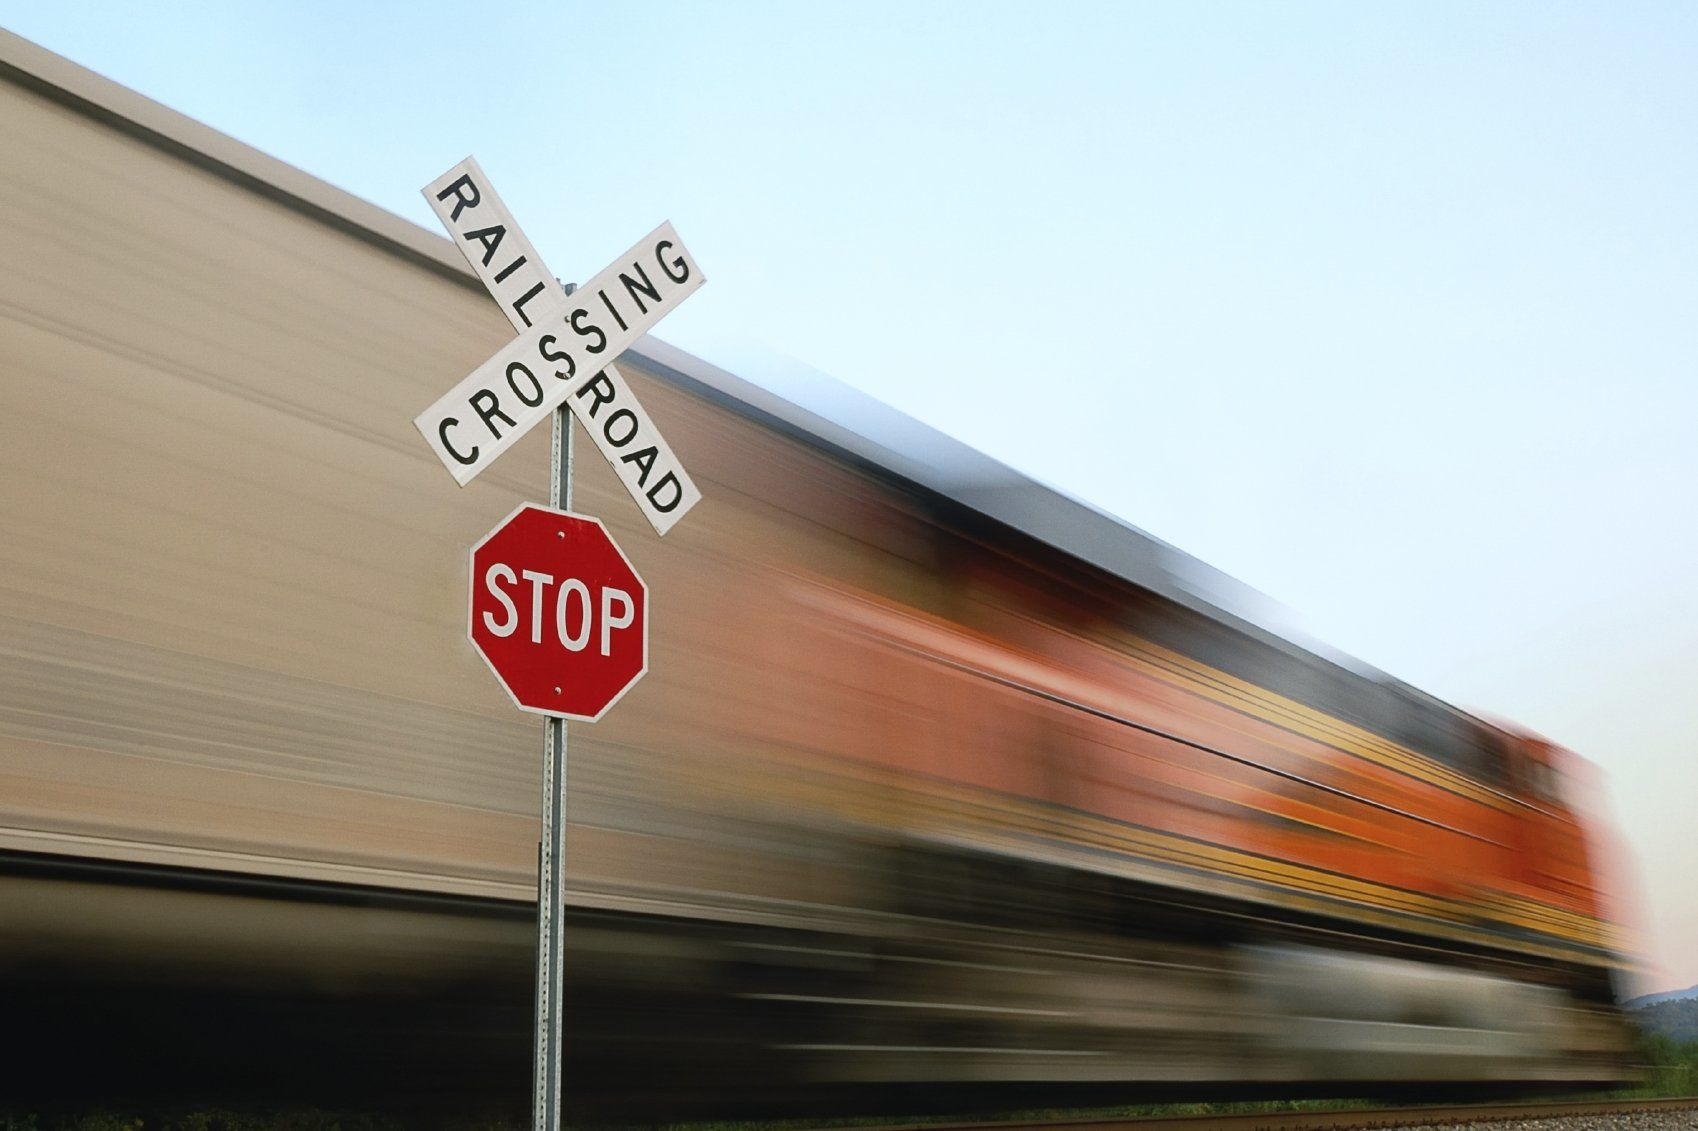 Photo of a train driving